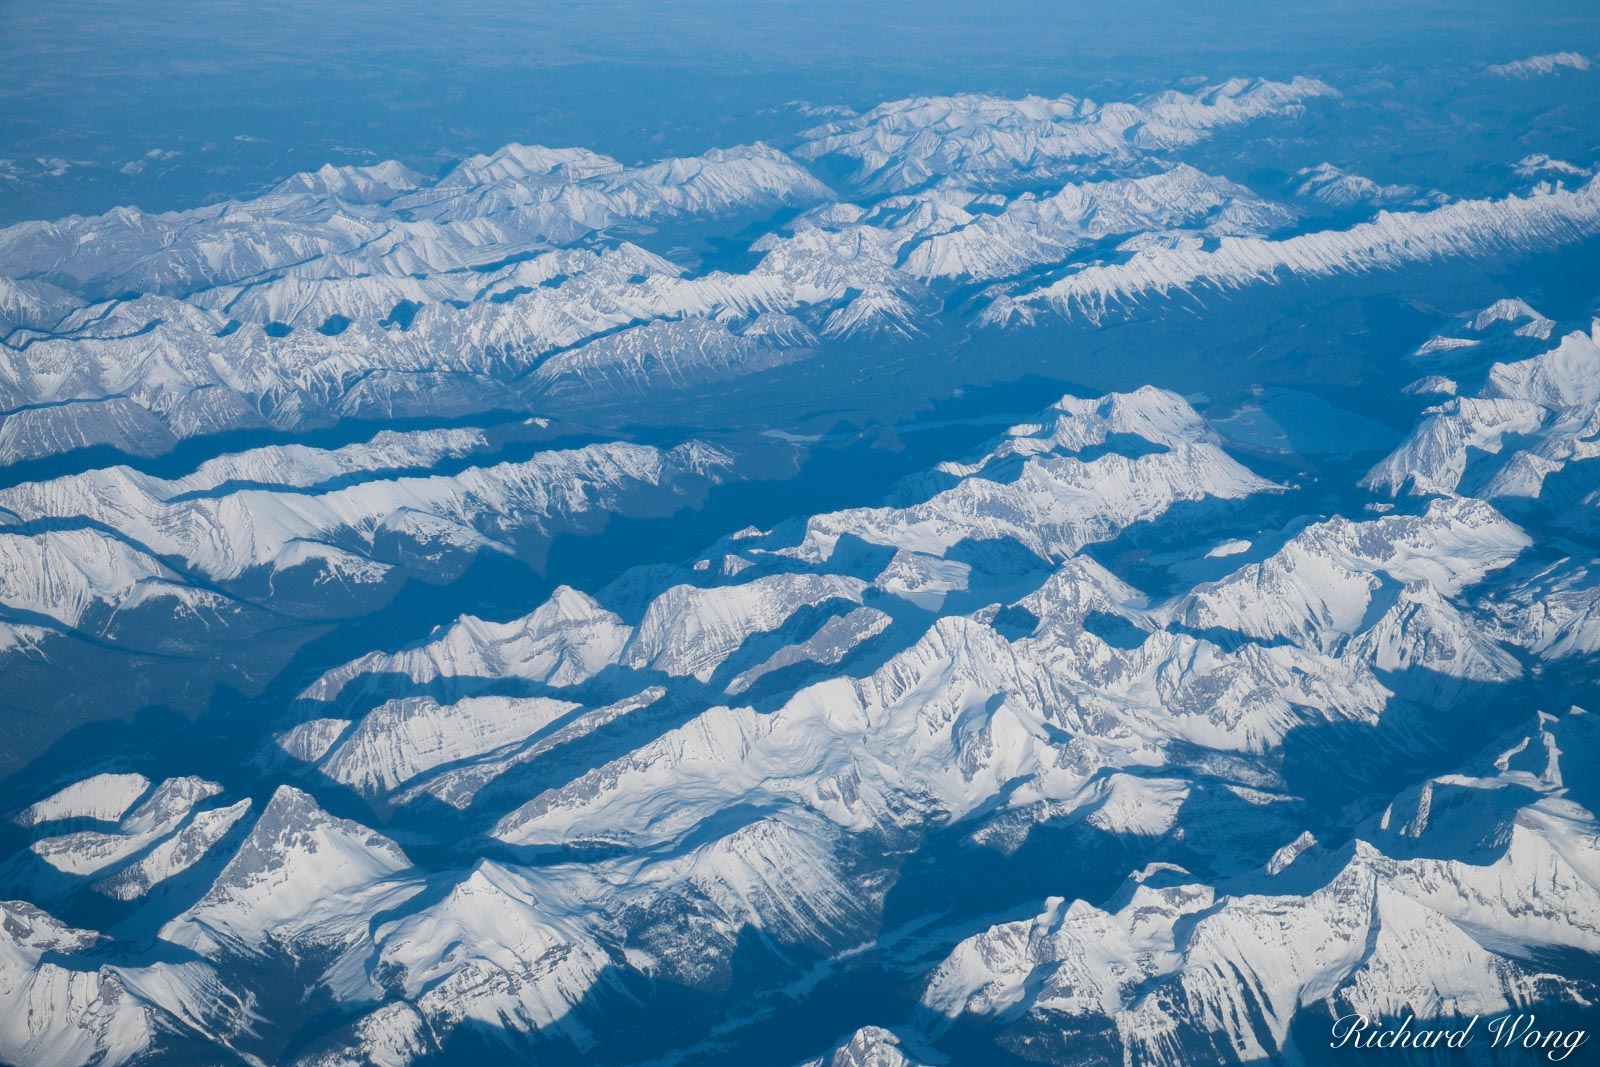 aerial, air, canada, canadian rockies, cold, flight, frozen, landscape, mountains, nature, north america, outdoors, outside, snow, snow-capped peaks, sunset, photo